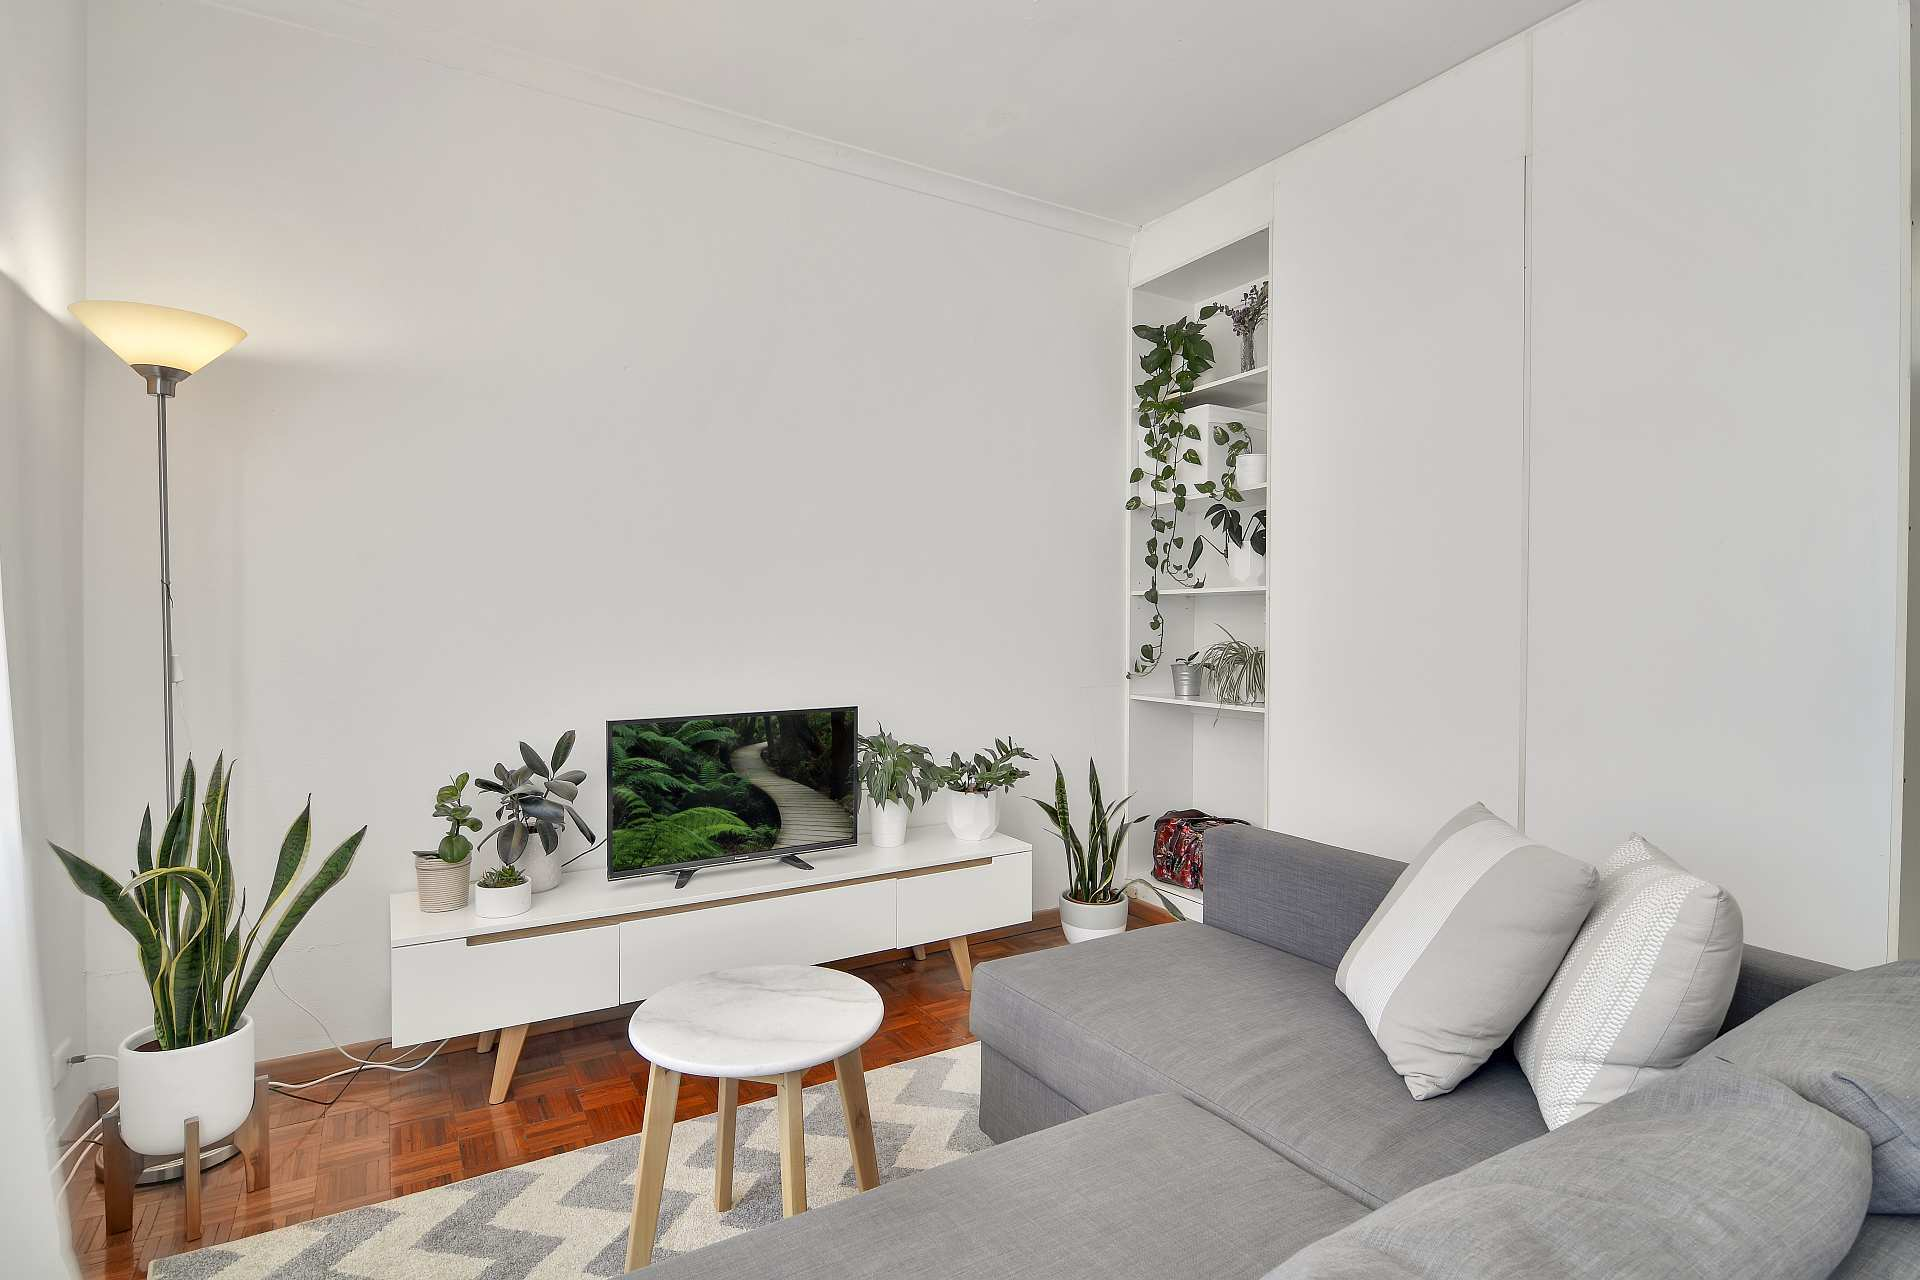 34/59 Whaling Road, North Sydney NSW 2060